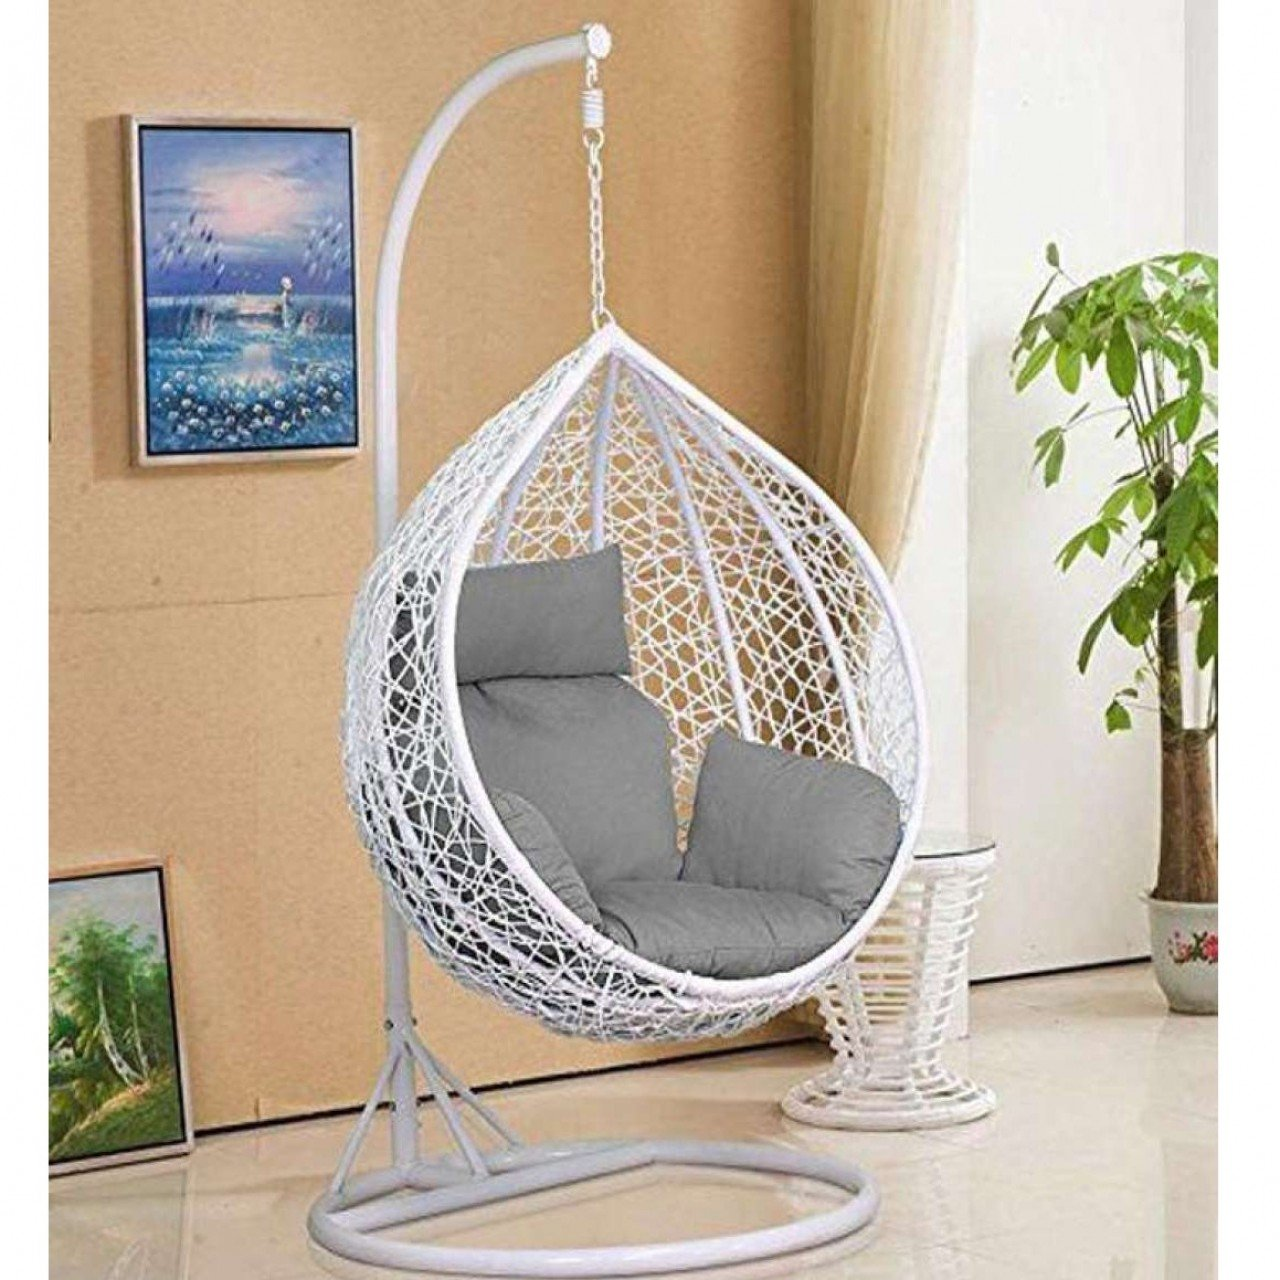 Indoor Hanging Chair With Stand Egg Shape Hanging Swing Chair Jhoola Stand Cushion For Adult White Use Garden Indoor Outdoor